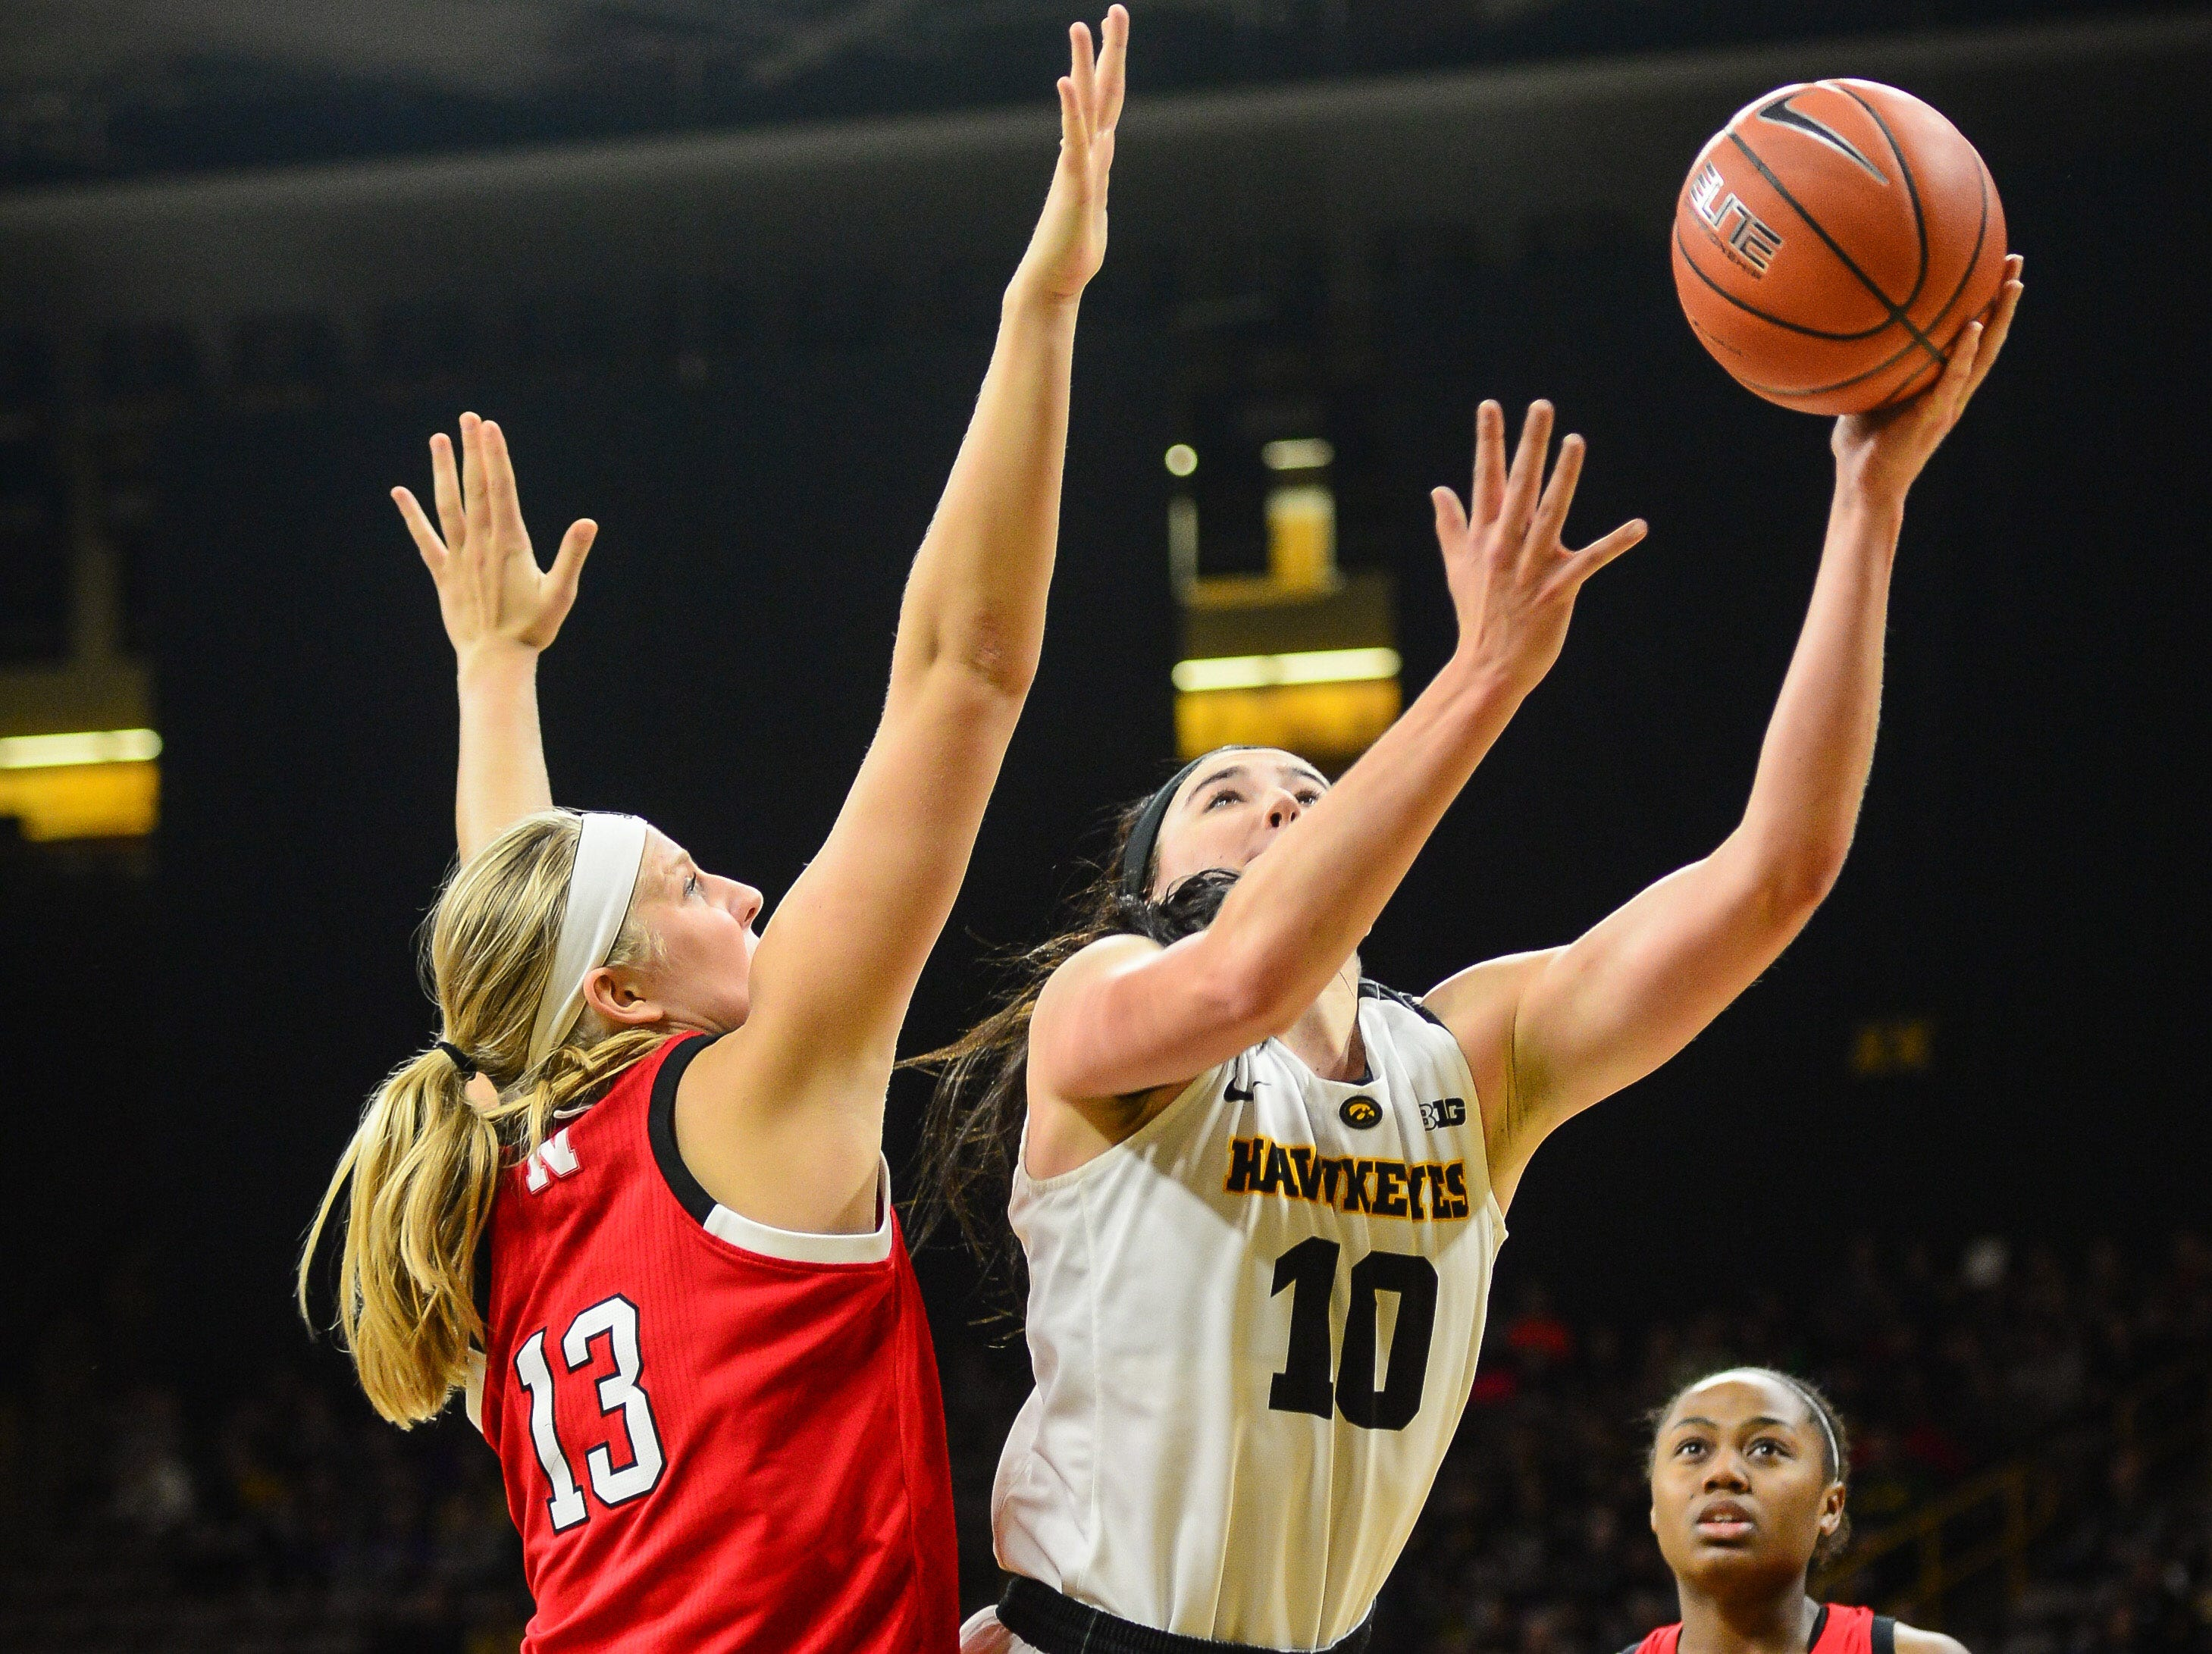 Iowa Hawkeyes forward Megan Gustafson (10) shoots the ball as Nebraska Cornhuskers forward Ashtyn Veerbeek (13) defends during the first quarter at Carver-Hawkeye Arena.